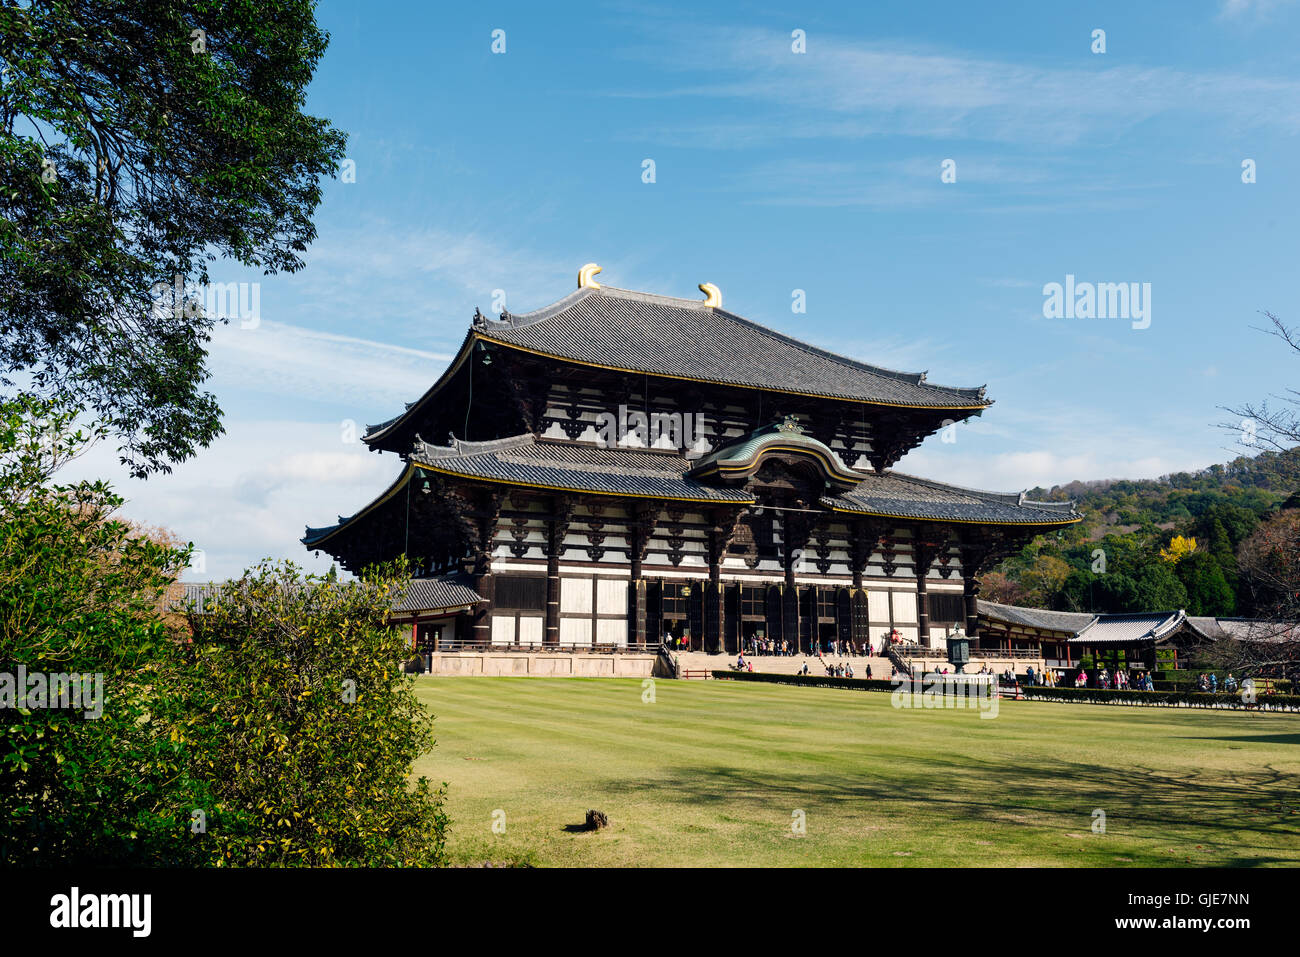 Nara, Japan - November 21 2016: Tōdai-ji is a Buddhist temple complex, that was once one of the powerful Seven Great - Stock Image